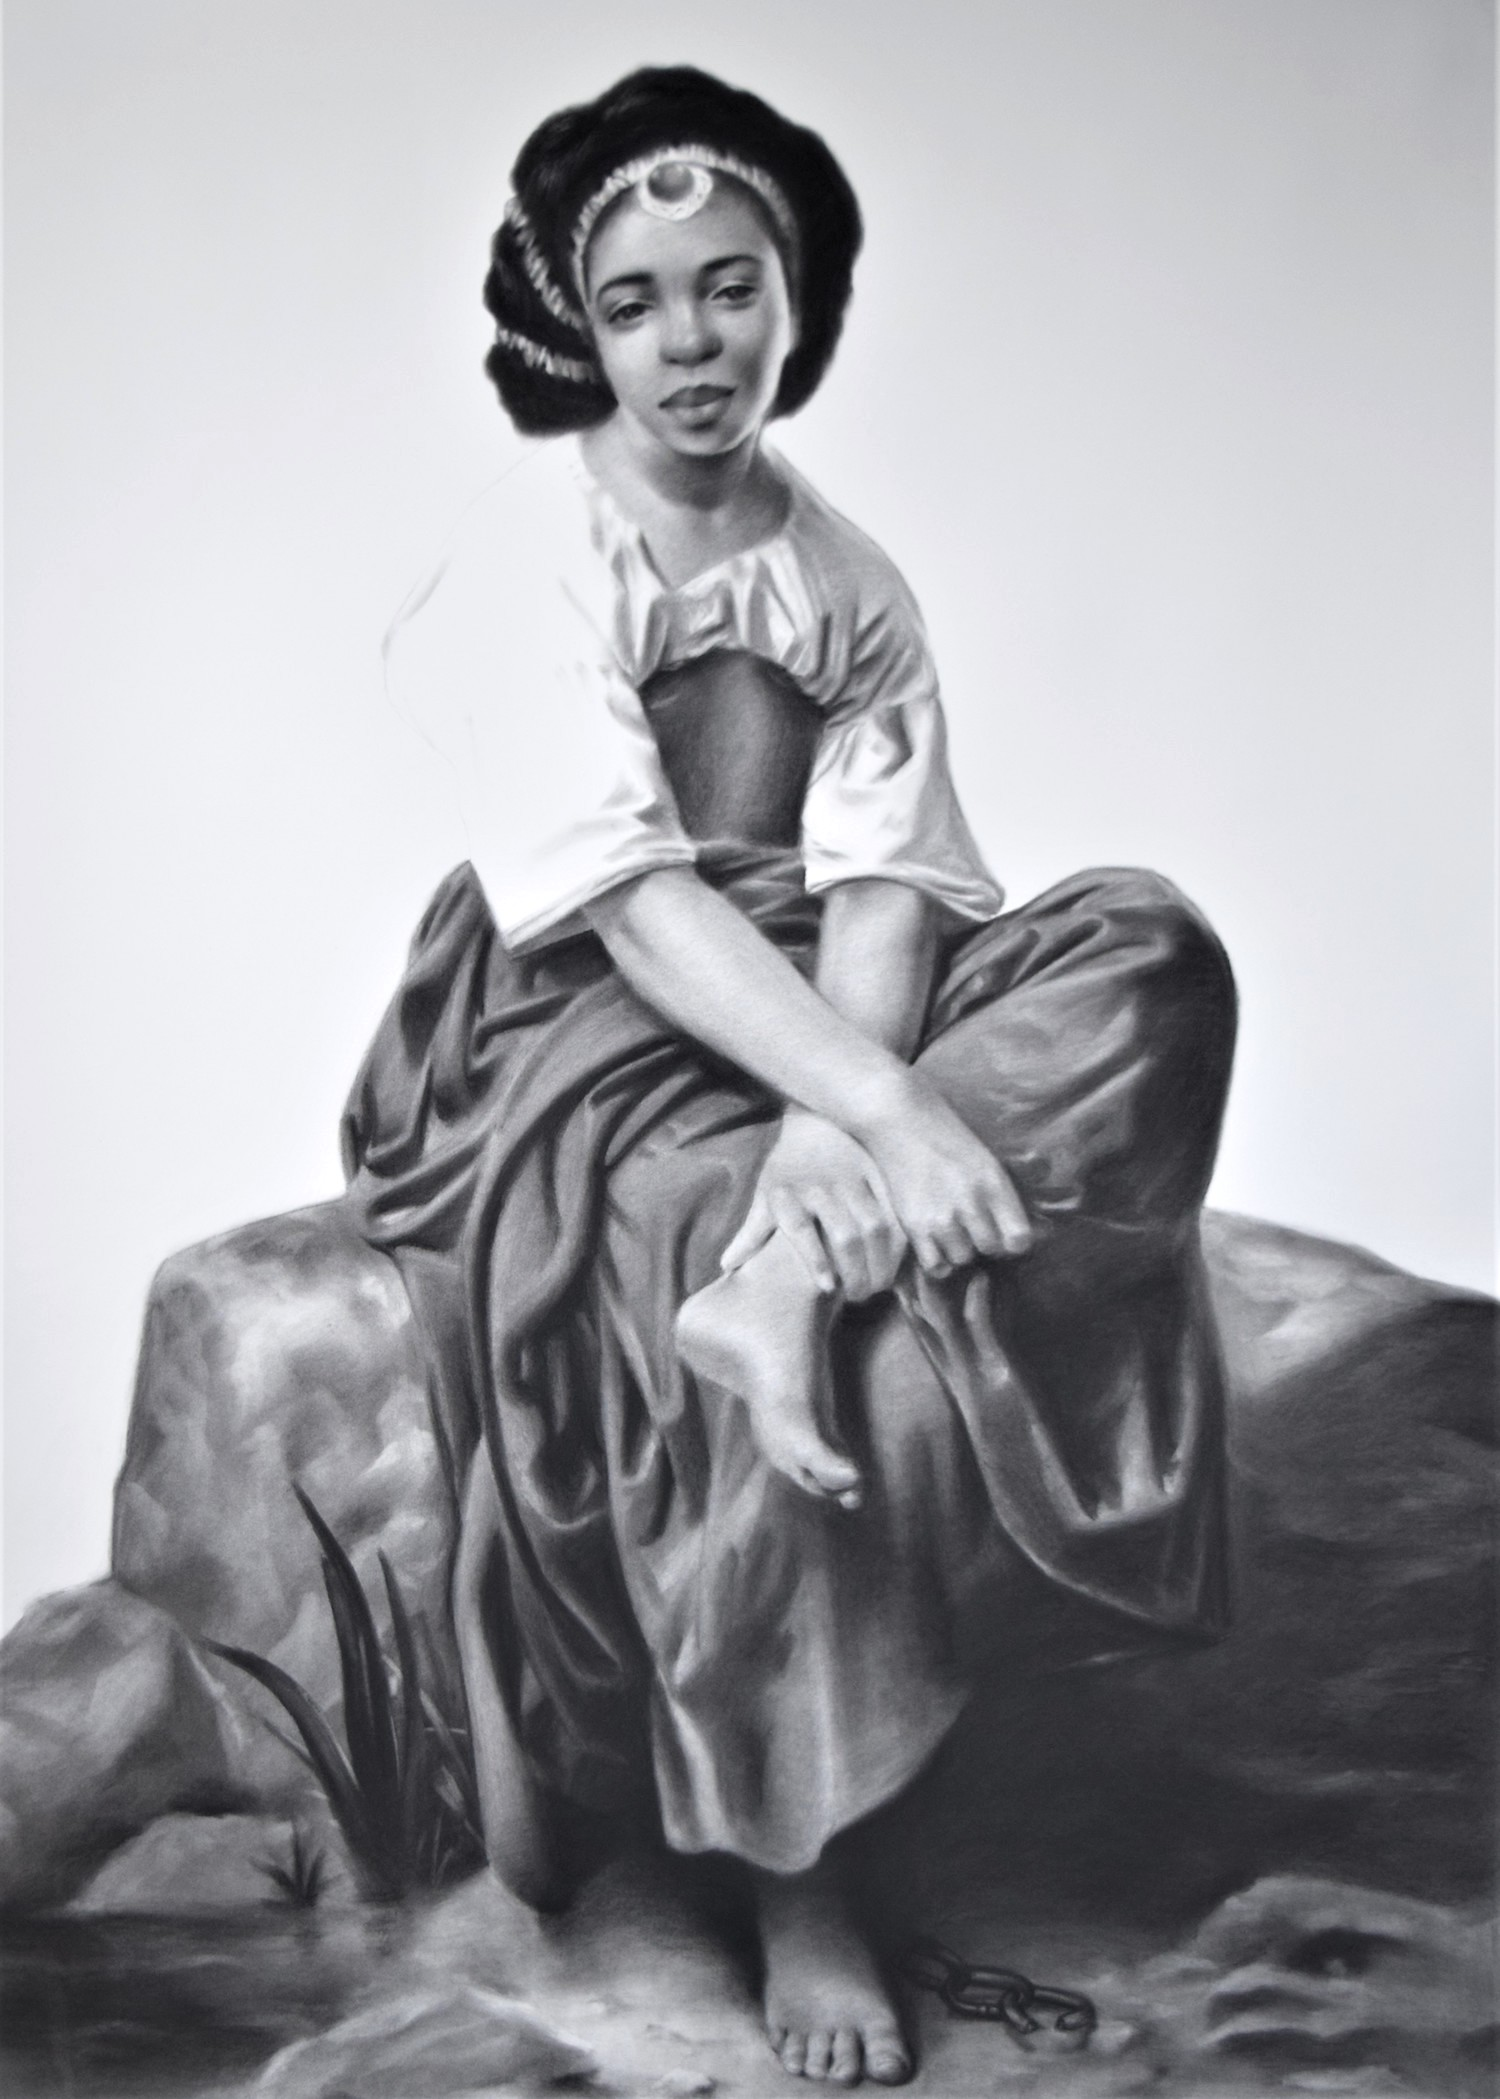 """Unbreakable, 2019, charcoal on paper, s.s. 60 x 45"""" / f.s. 61 x 46"""""""